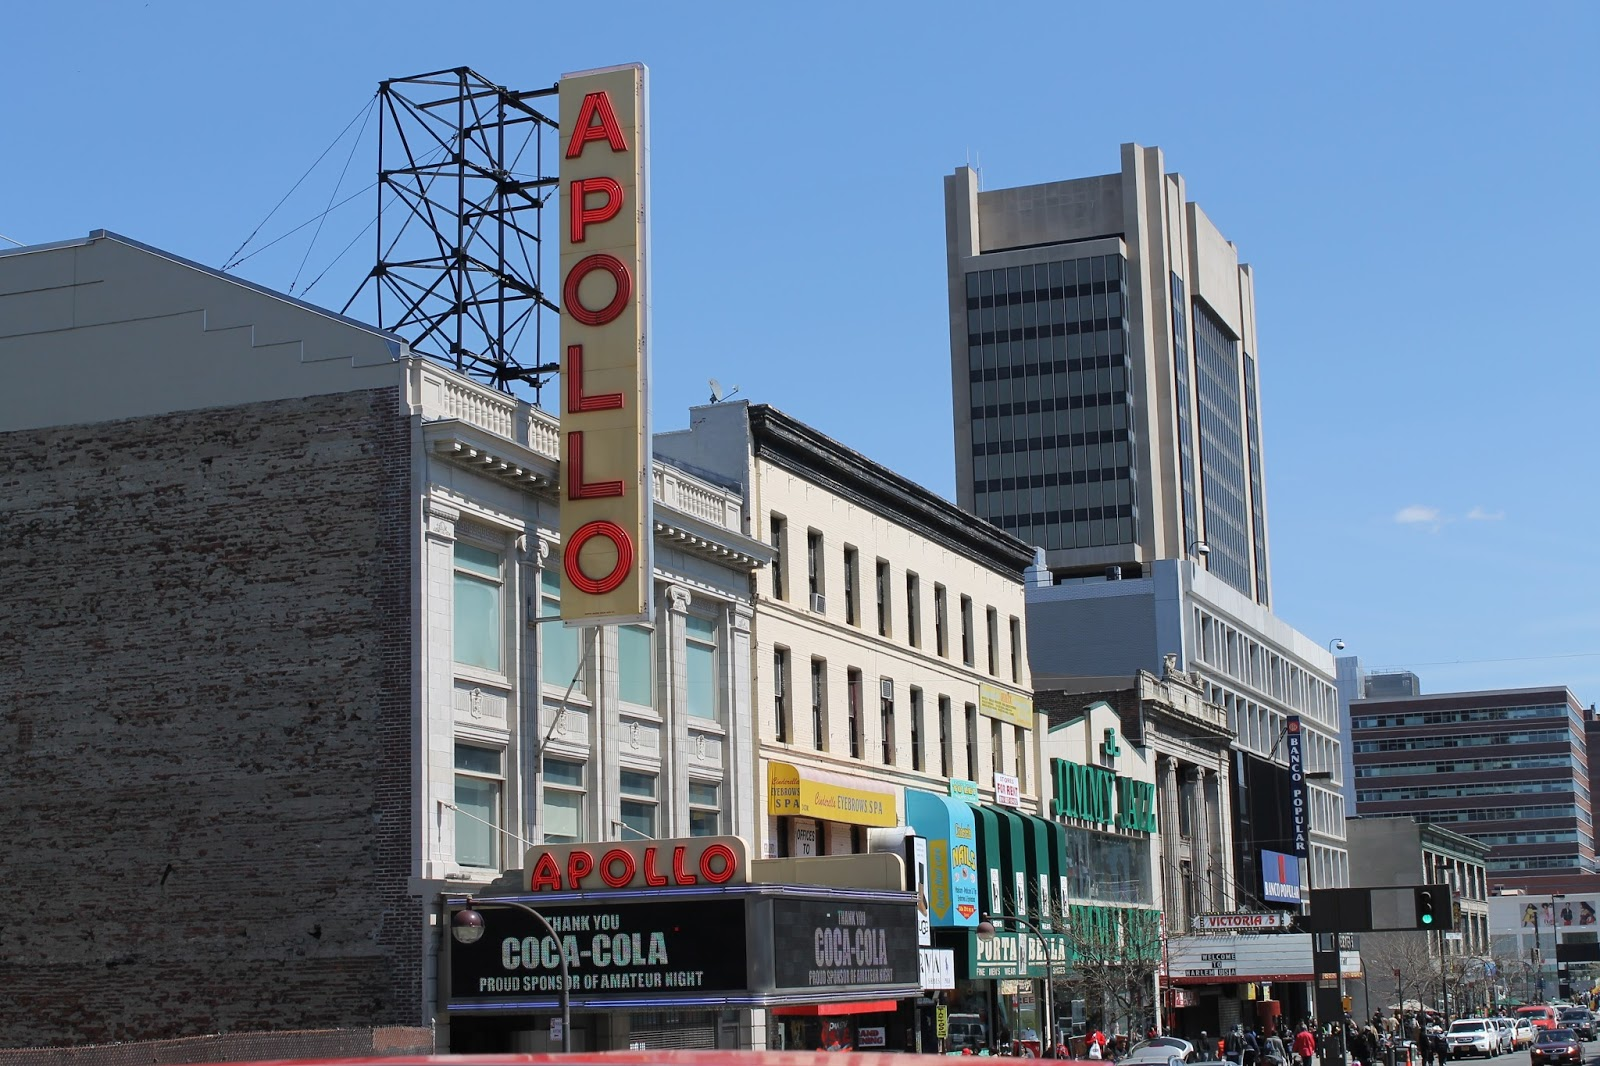 Apollo Theater Harlem NYC